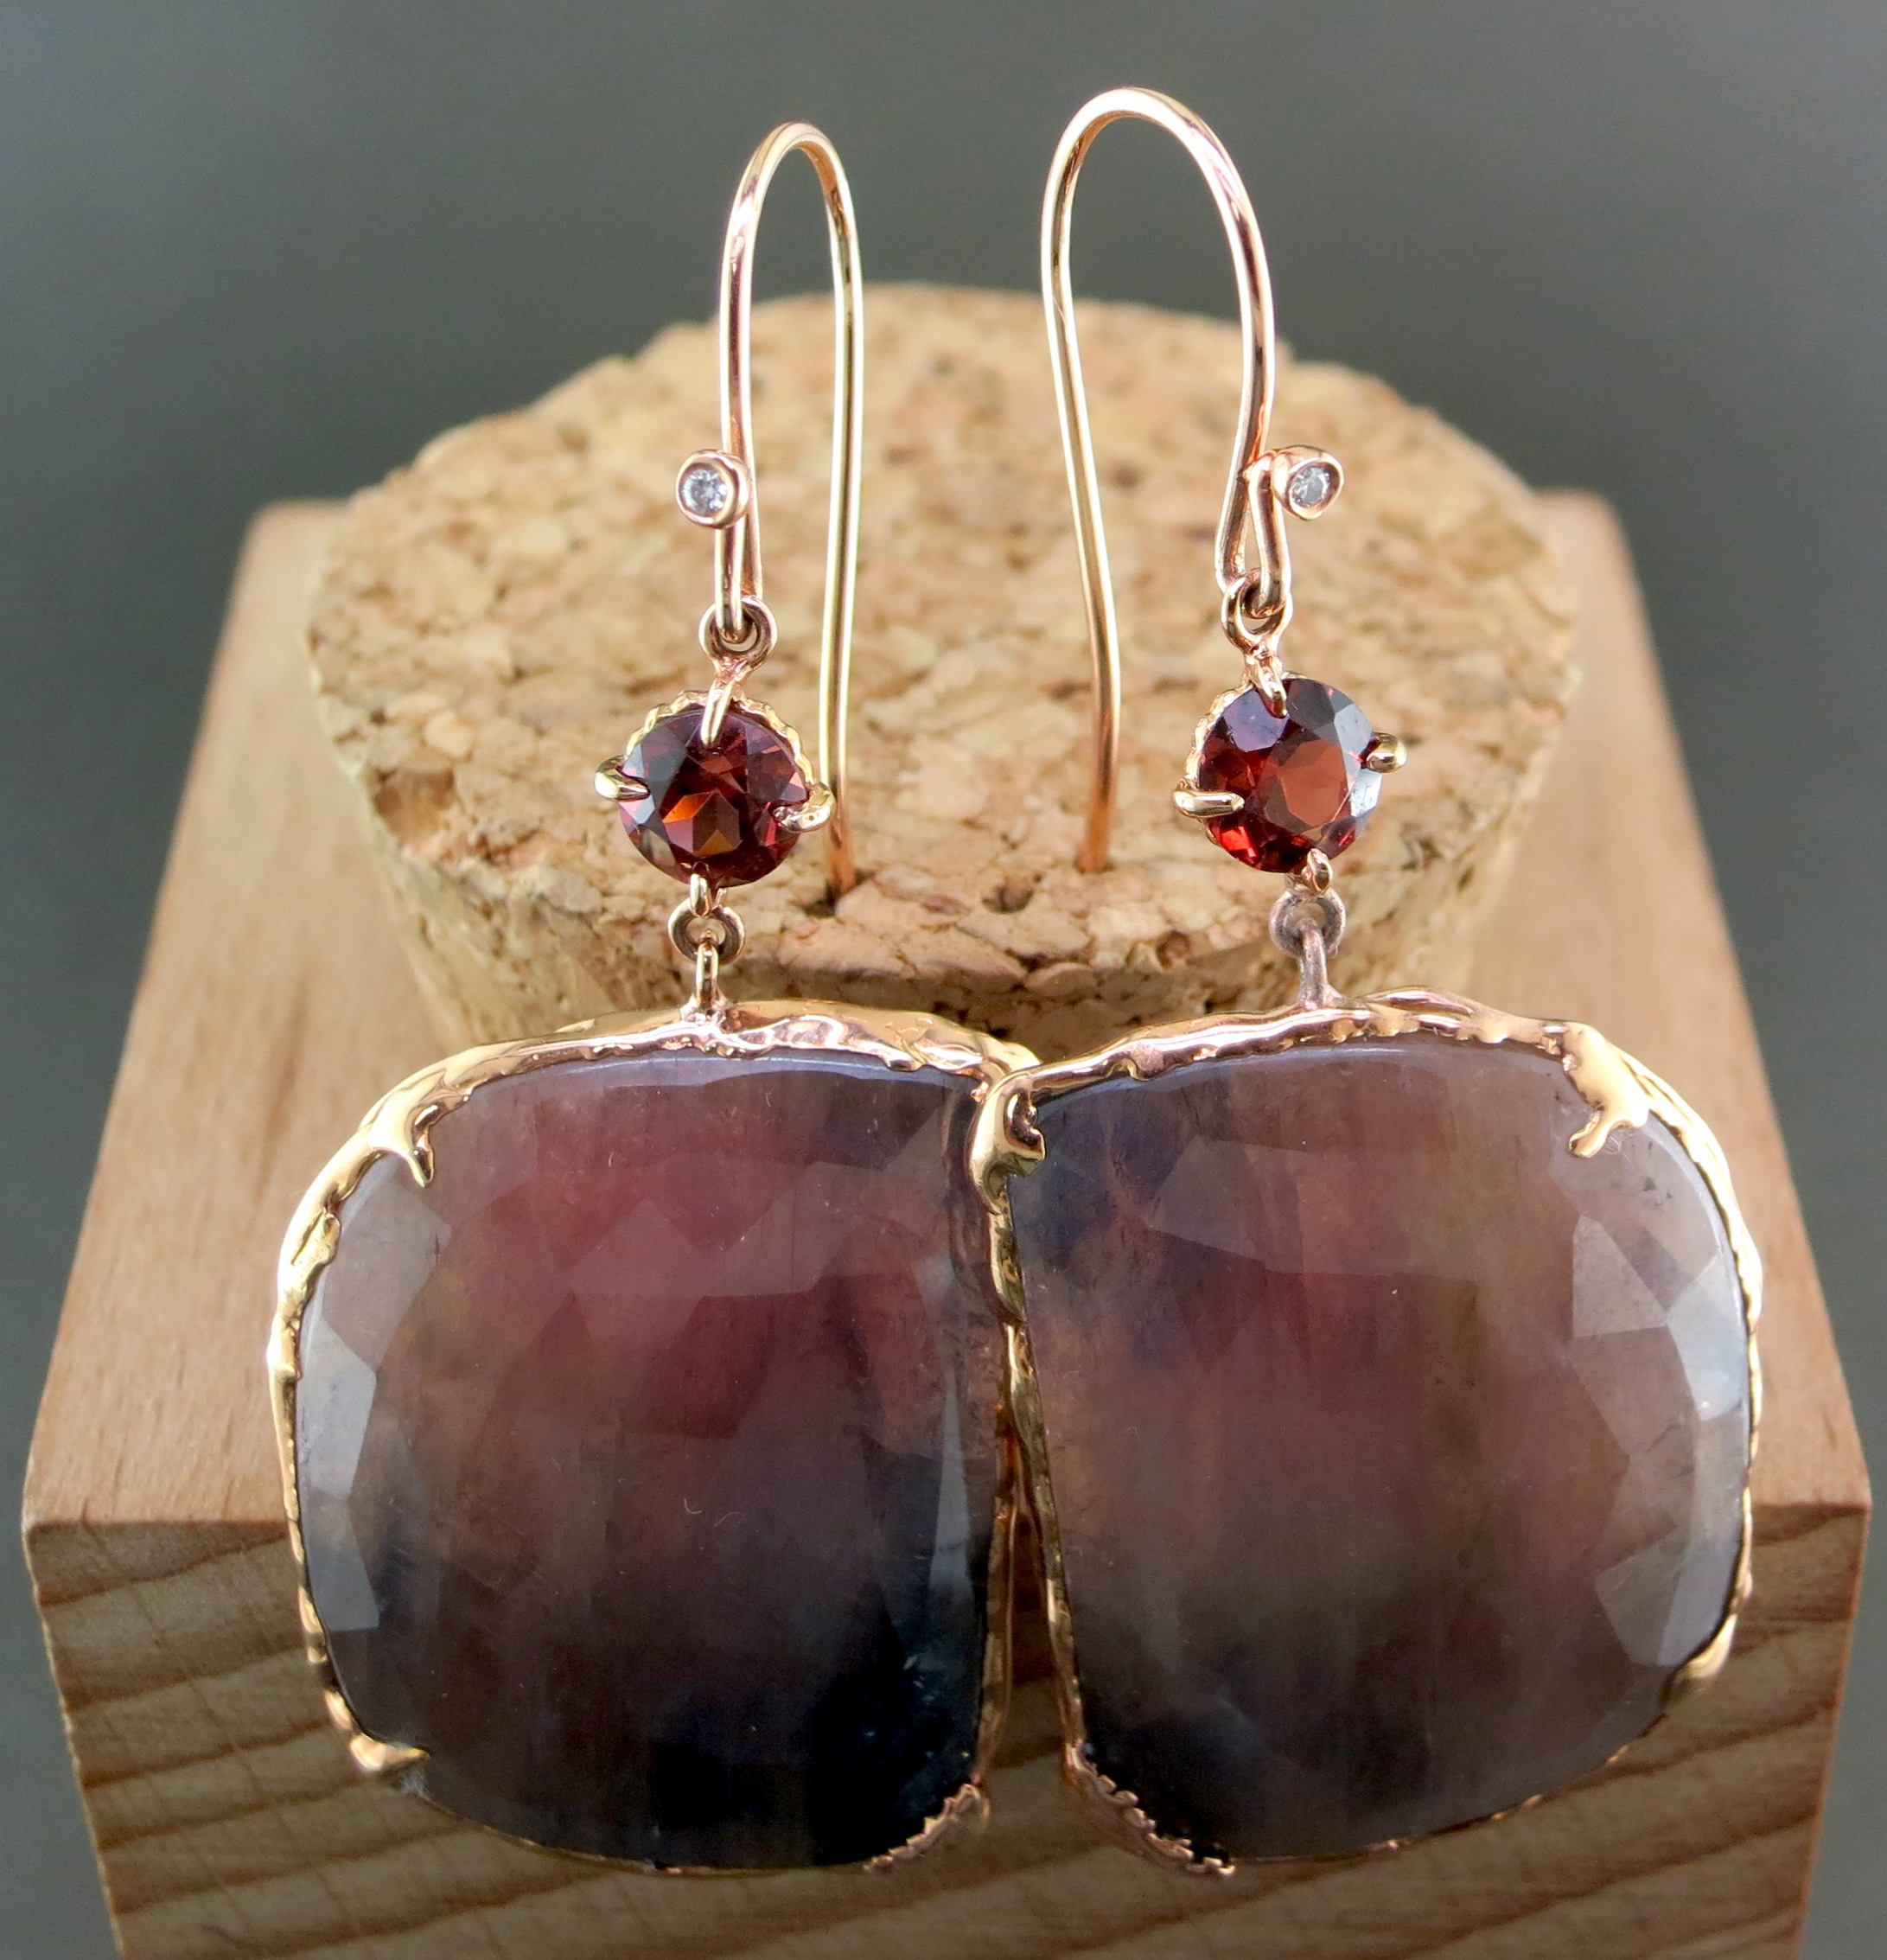 18 Karat Rose Gold,Sapphire, andGarnet Dangle Earrings, accented with Diamonds (MB5090)